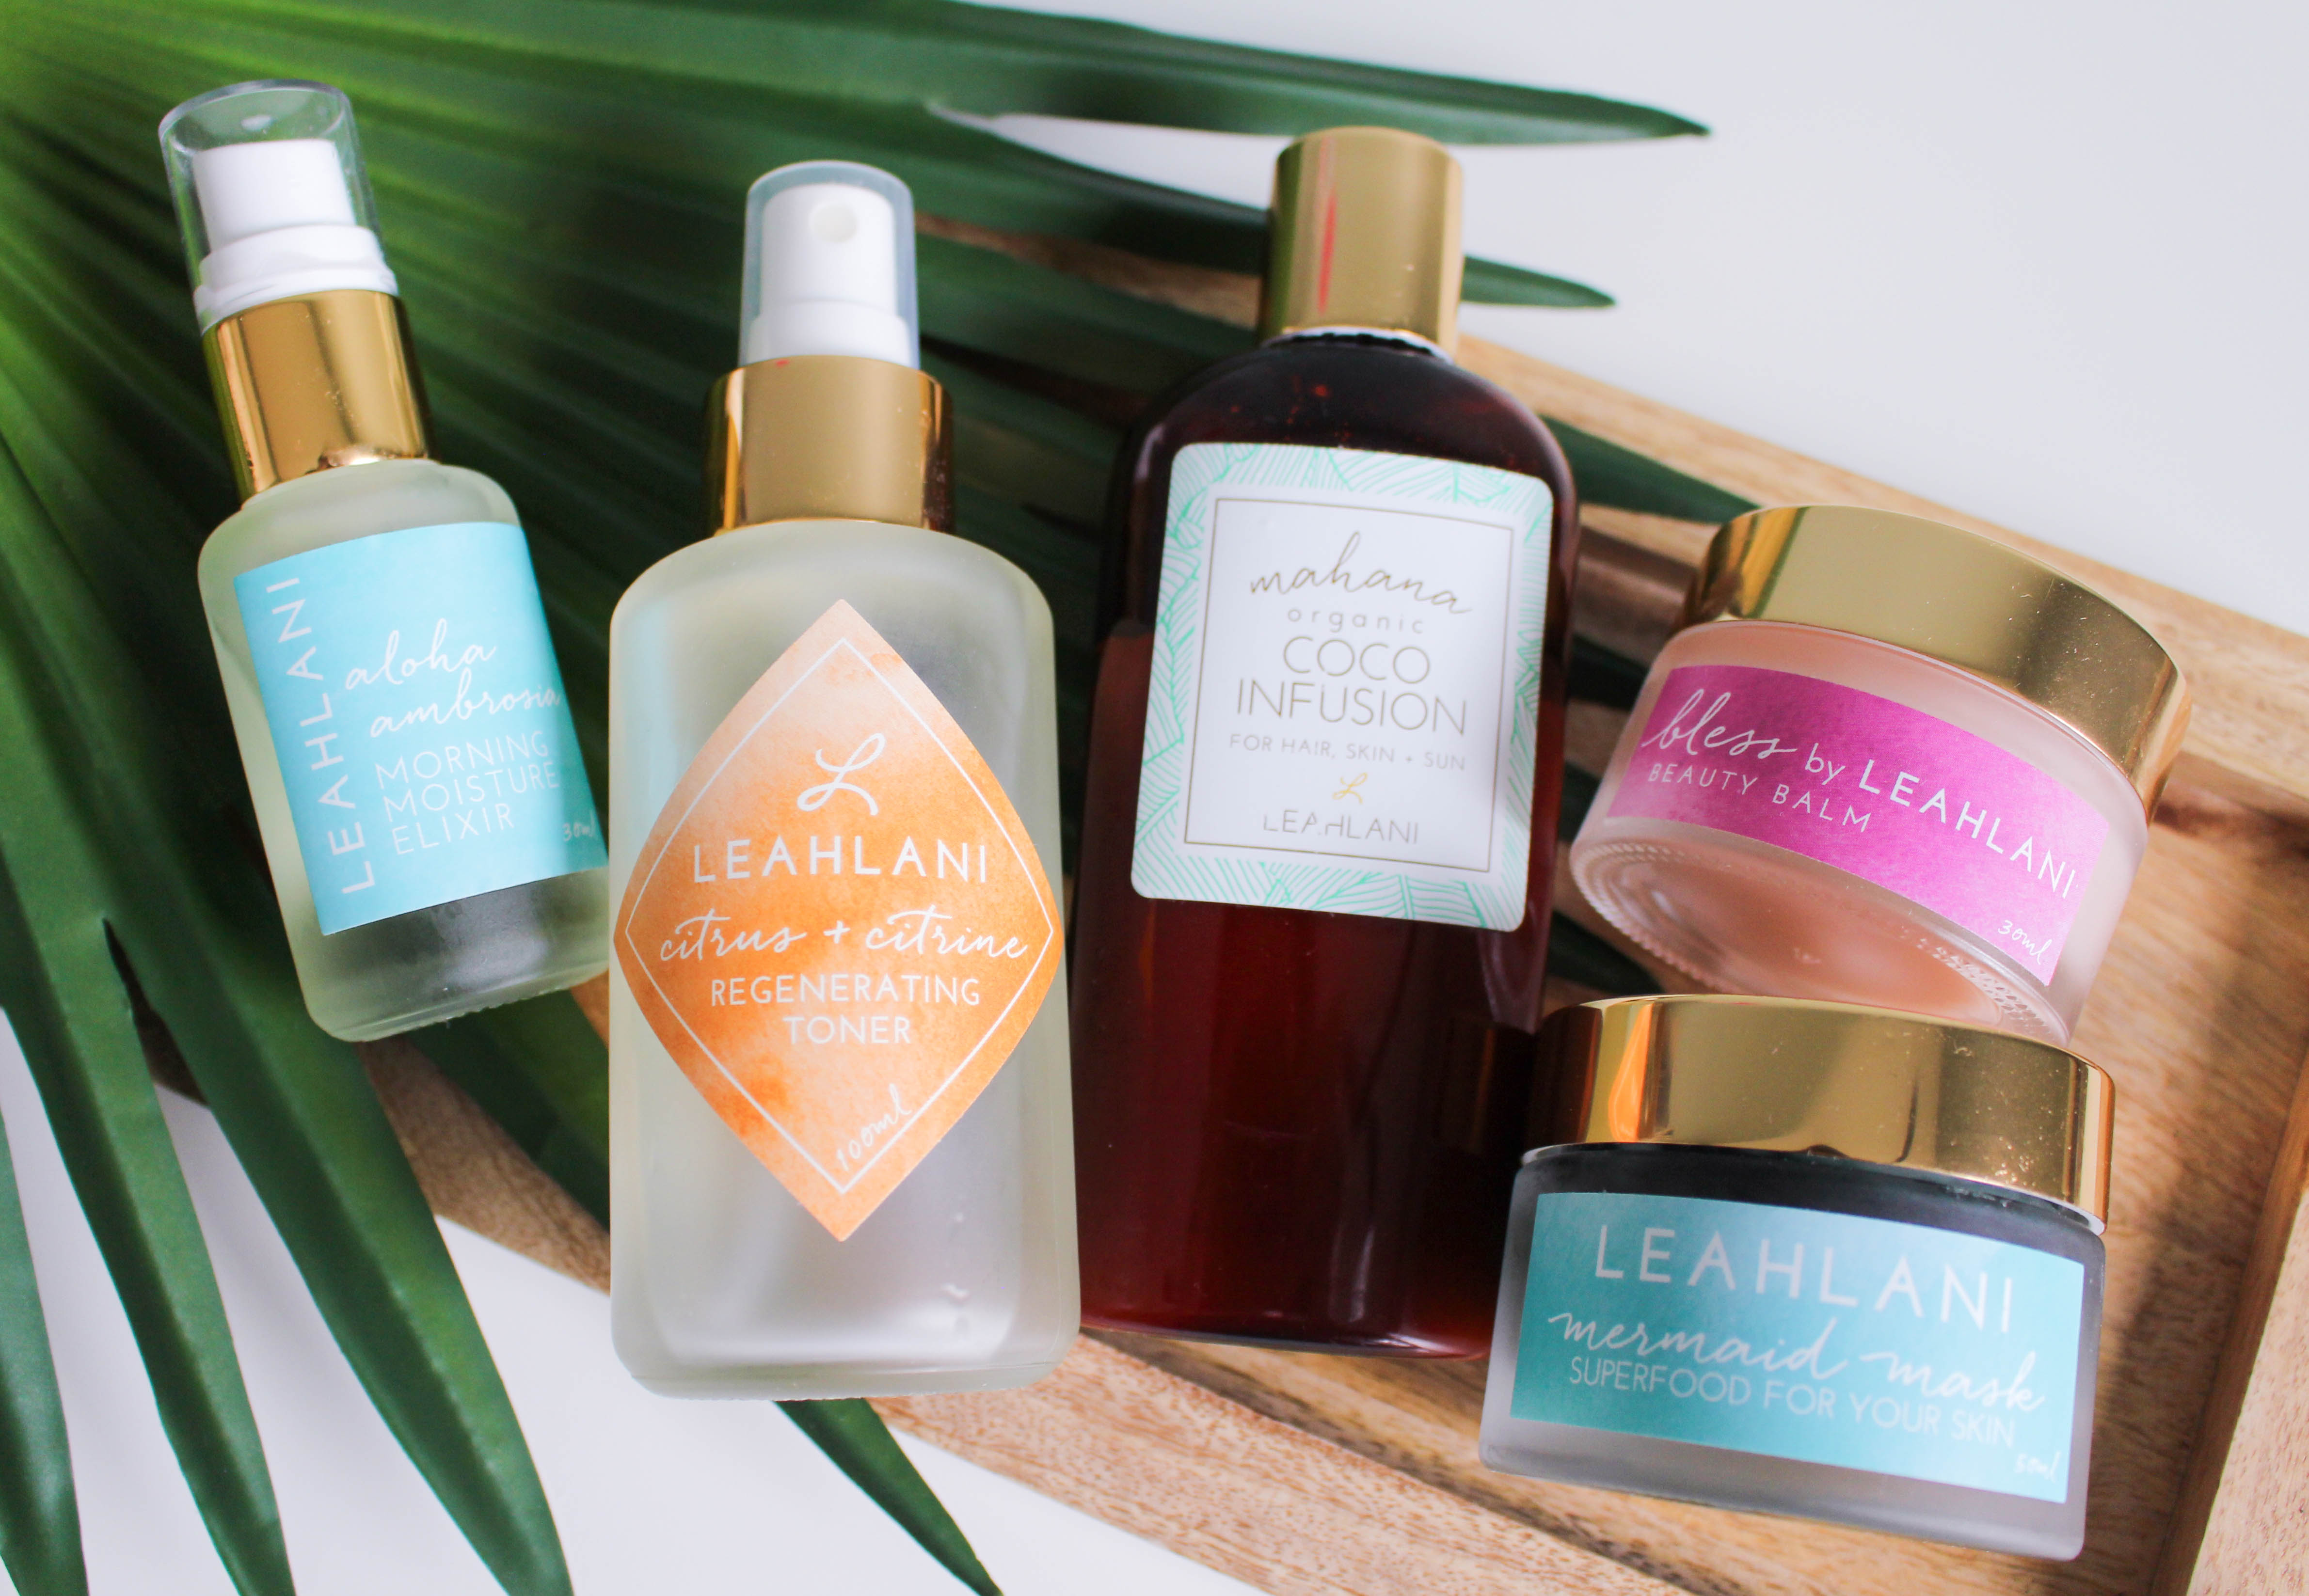 Leahlani Skincare's Island-Inspired Products Promote